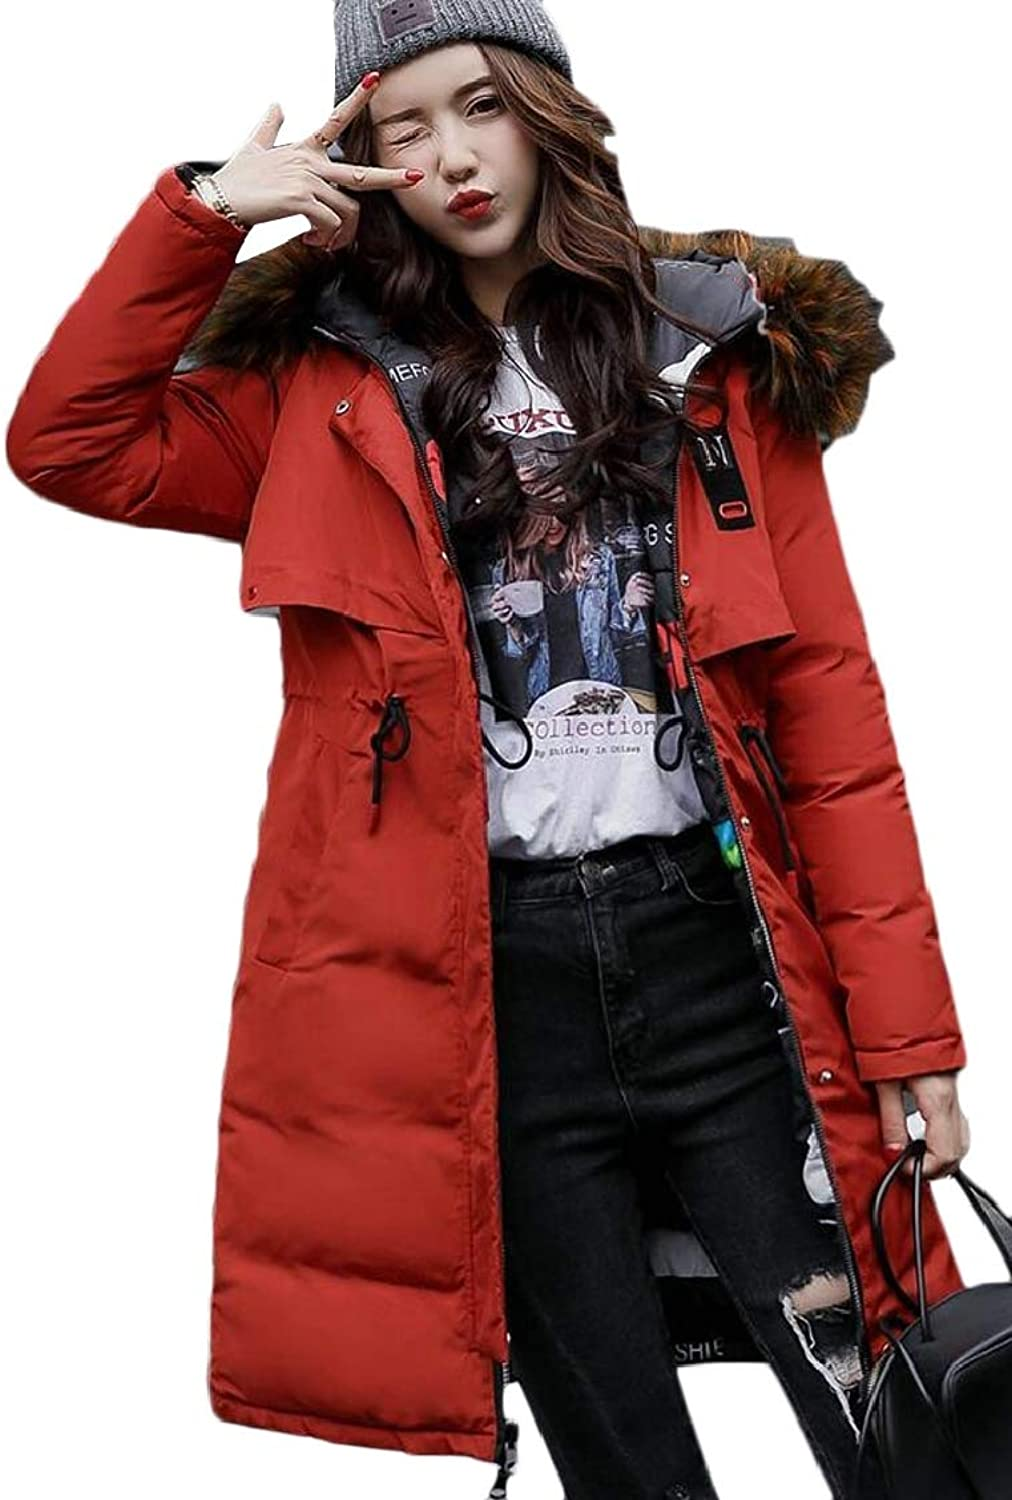 Jxfd Women's Winter Down Coat with Faux Fur Hooded Long Parka Quilted Jacket